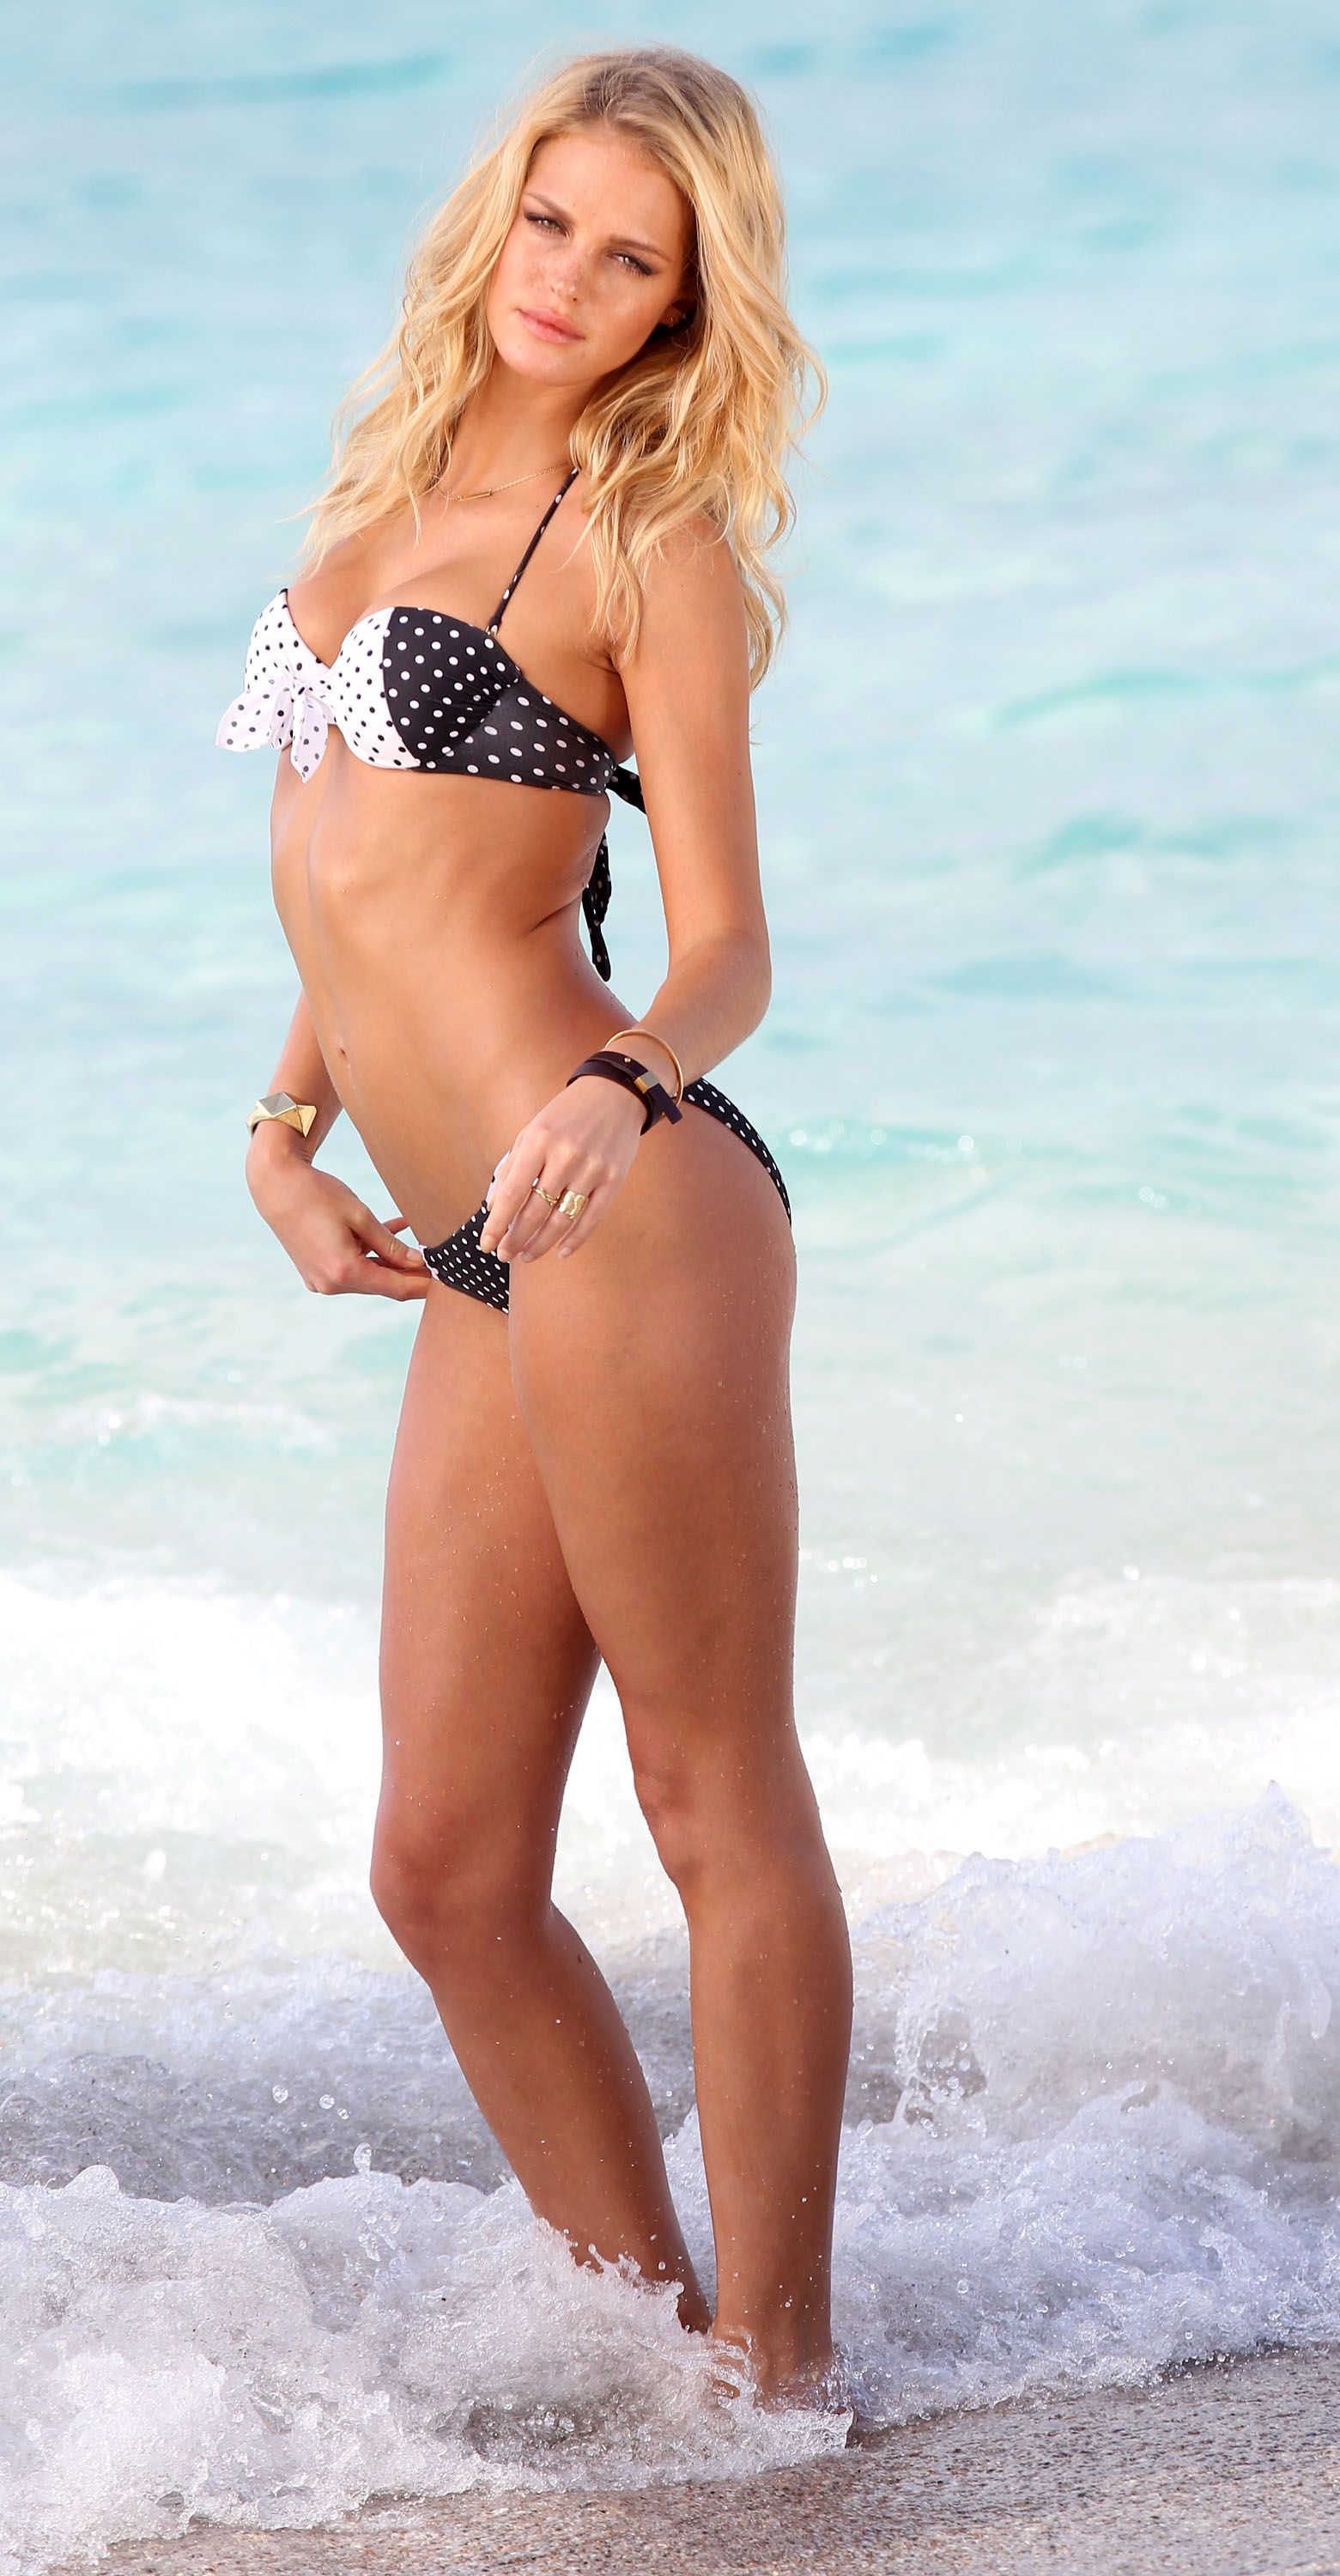 Erin Heatherton Shows Off Her Bikini Body